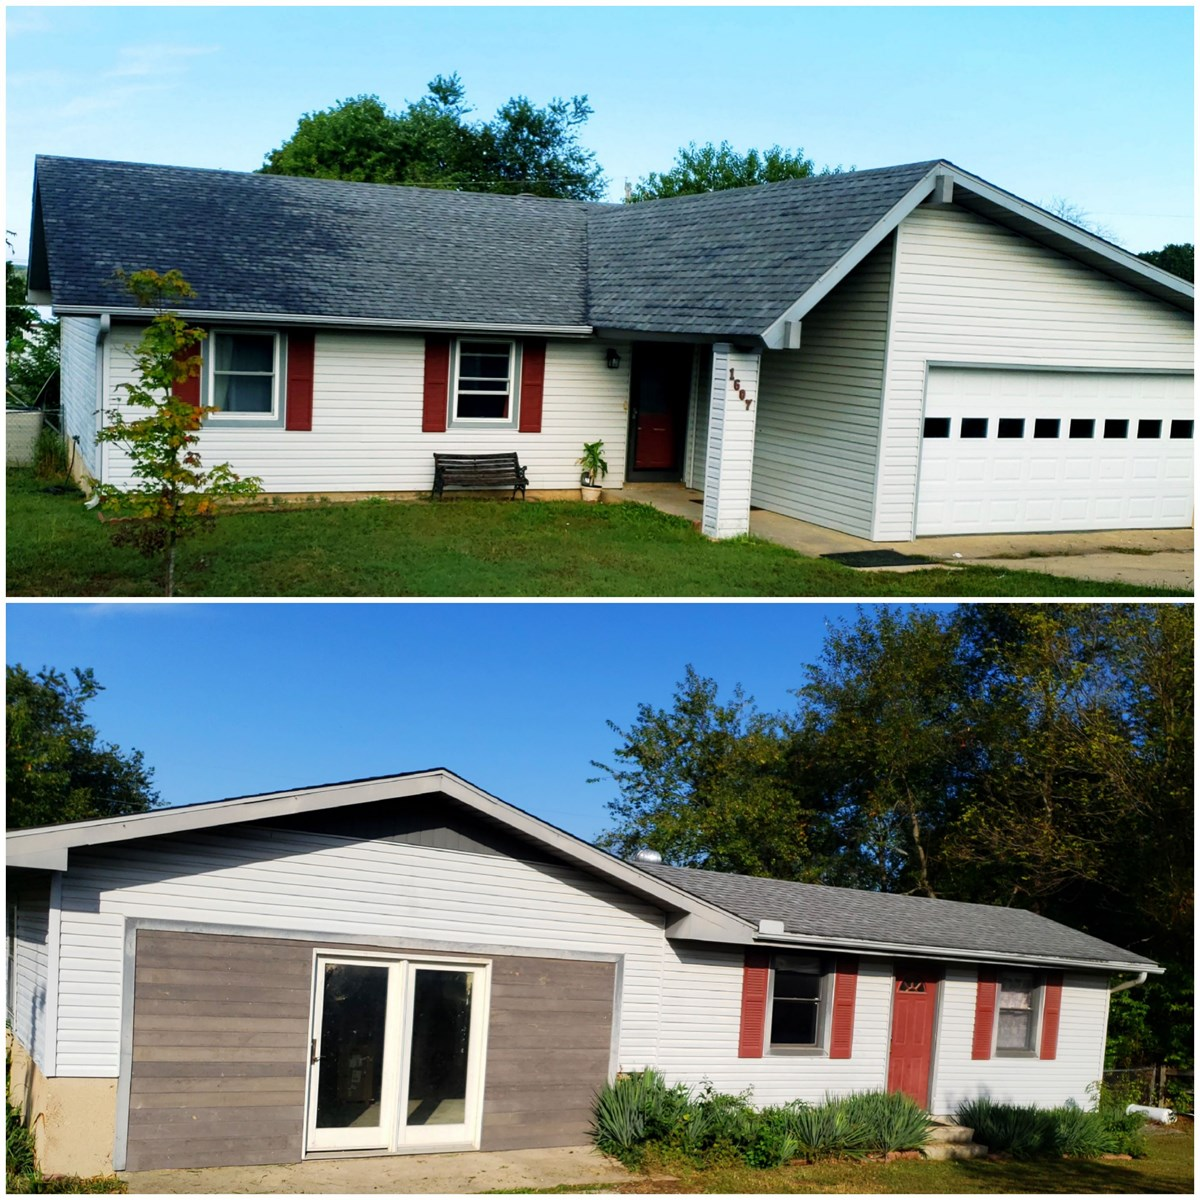 Home For Sale On Two City Lots, West Plains, Missouri